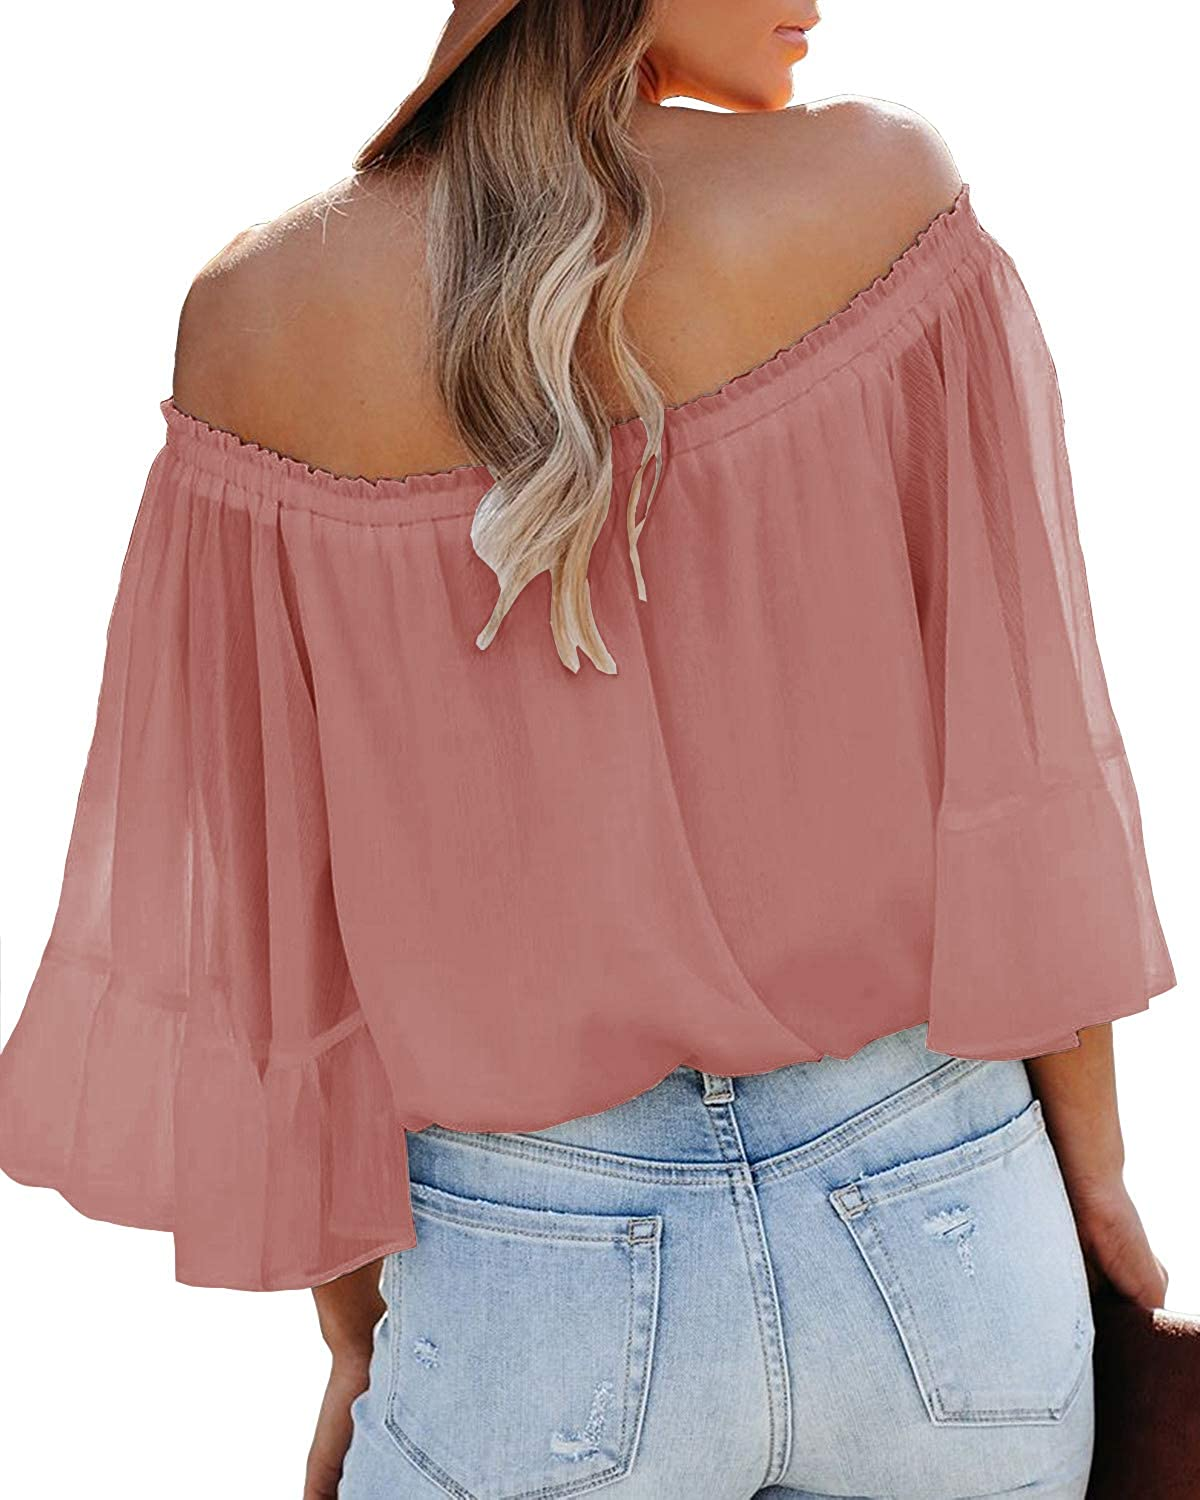 SENSERISE Womens Off The Shoulder Tops Casual Loose Chiffon Bell Sleeve Blouse Shirts